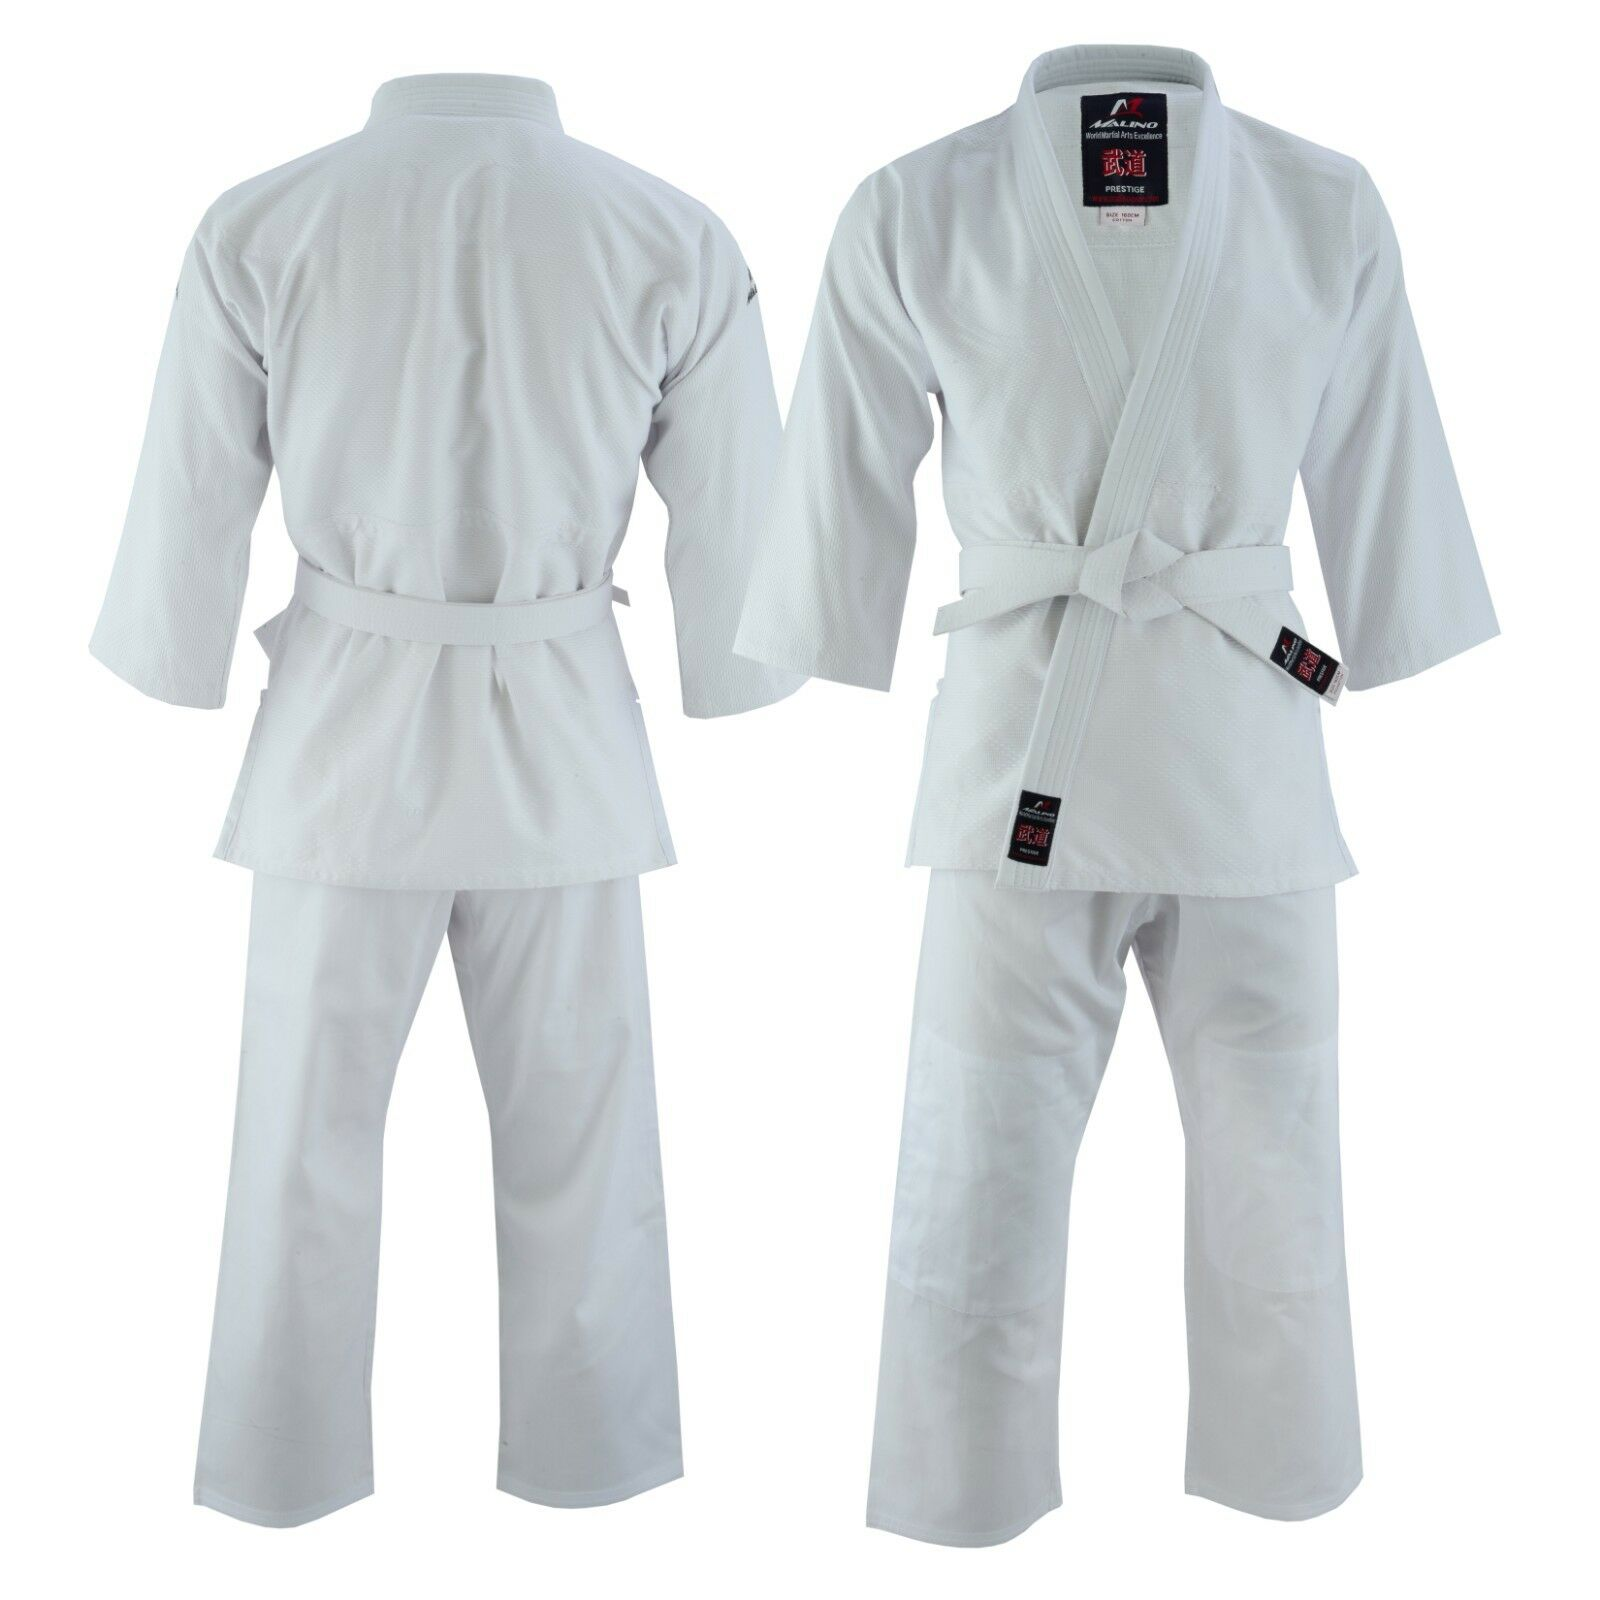 Malino Student Judo Gi Suit Uniform Kids Adult Men Sizes Cotton 450gsm White